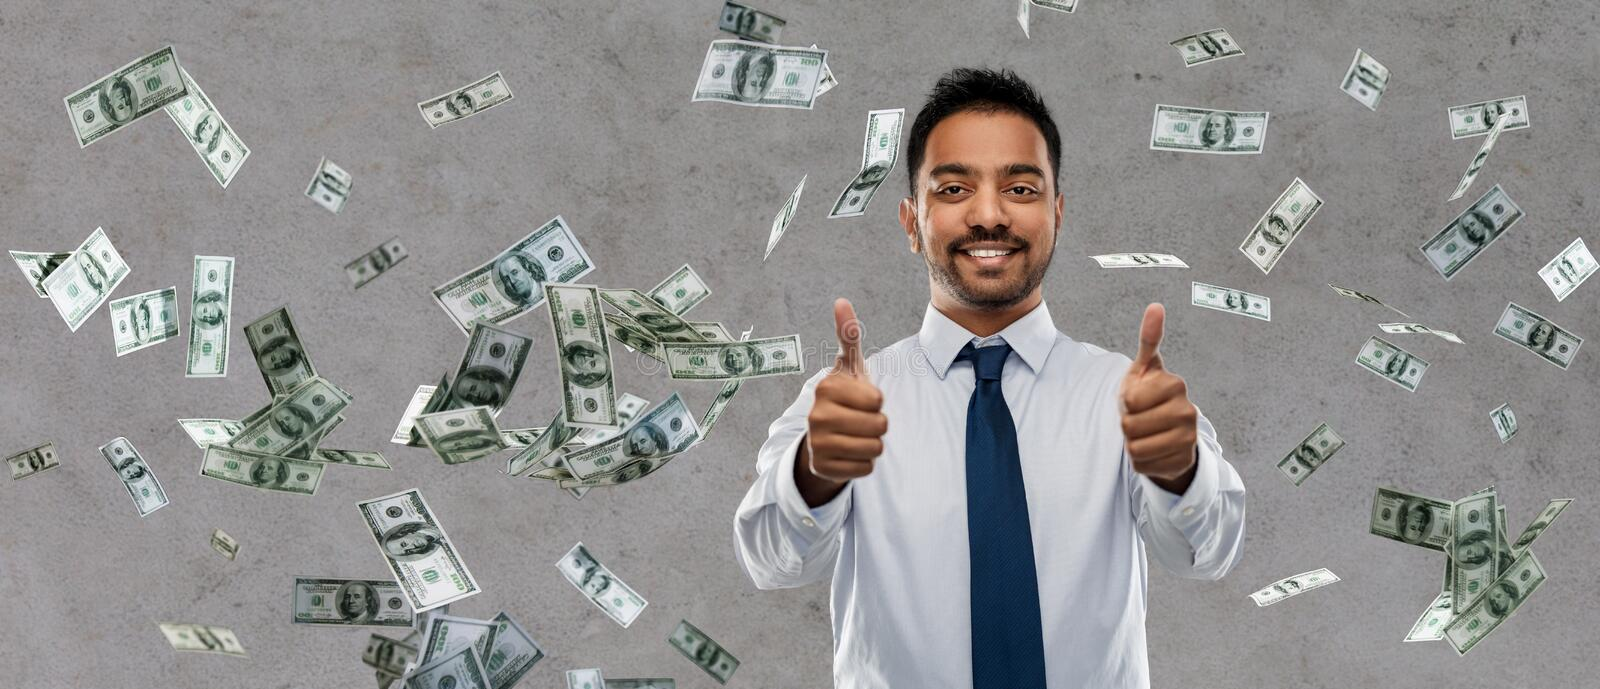 Indian businessman showing thumbs up over money. Business, office worker and people concept - smiling indian businessman showing thumbs up over money rain on stock photo